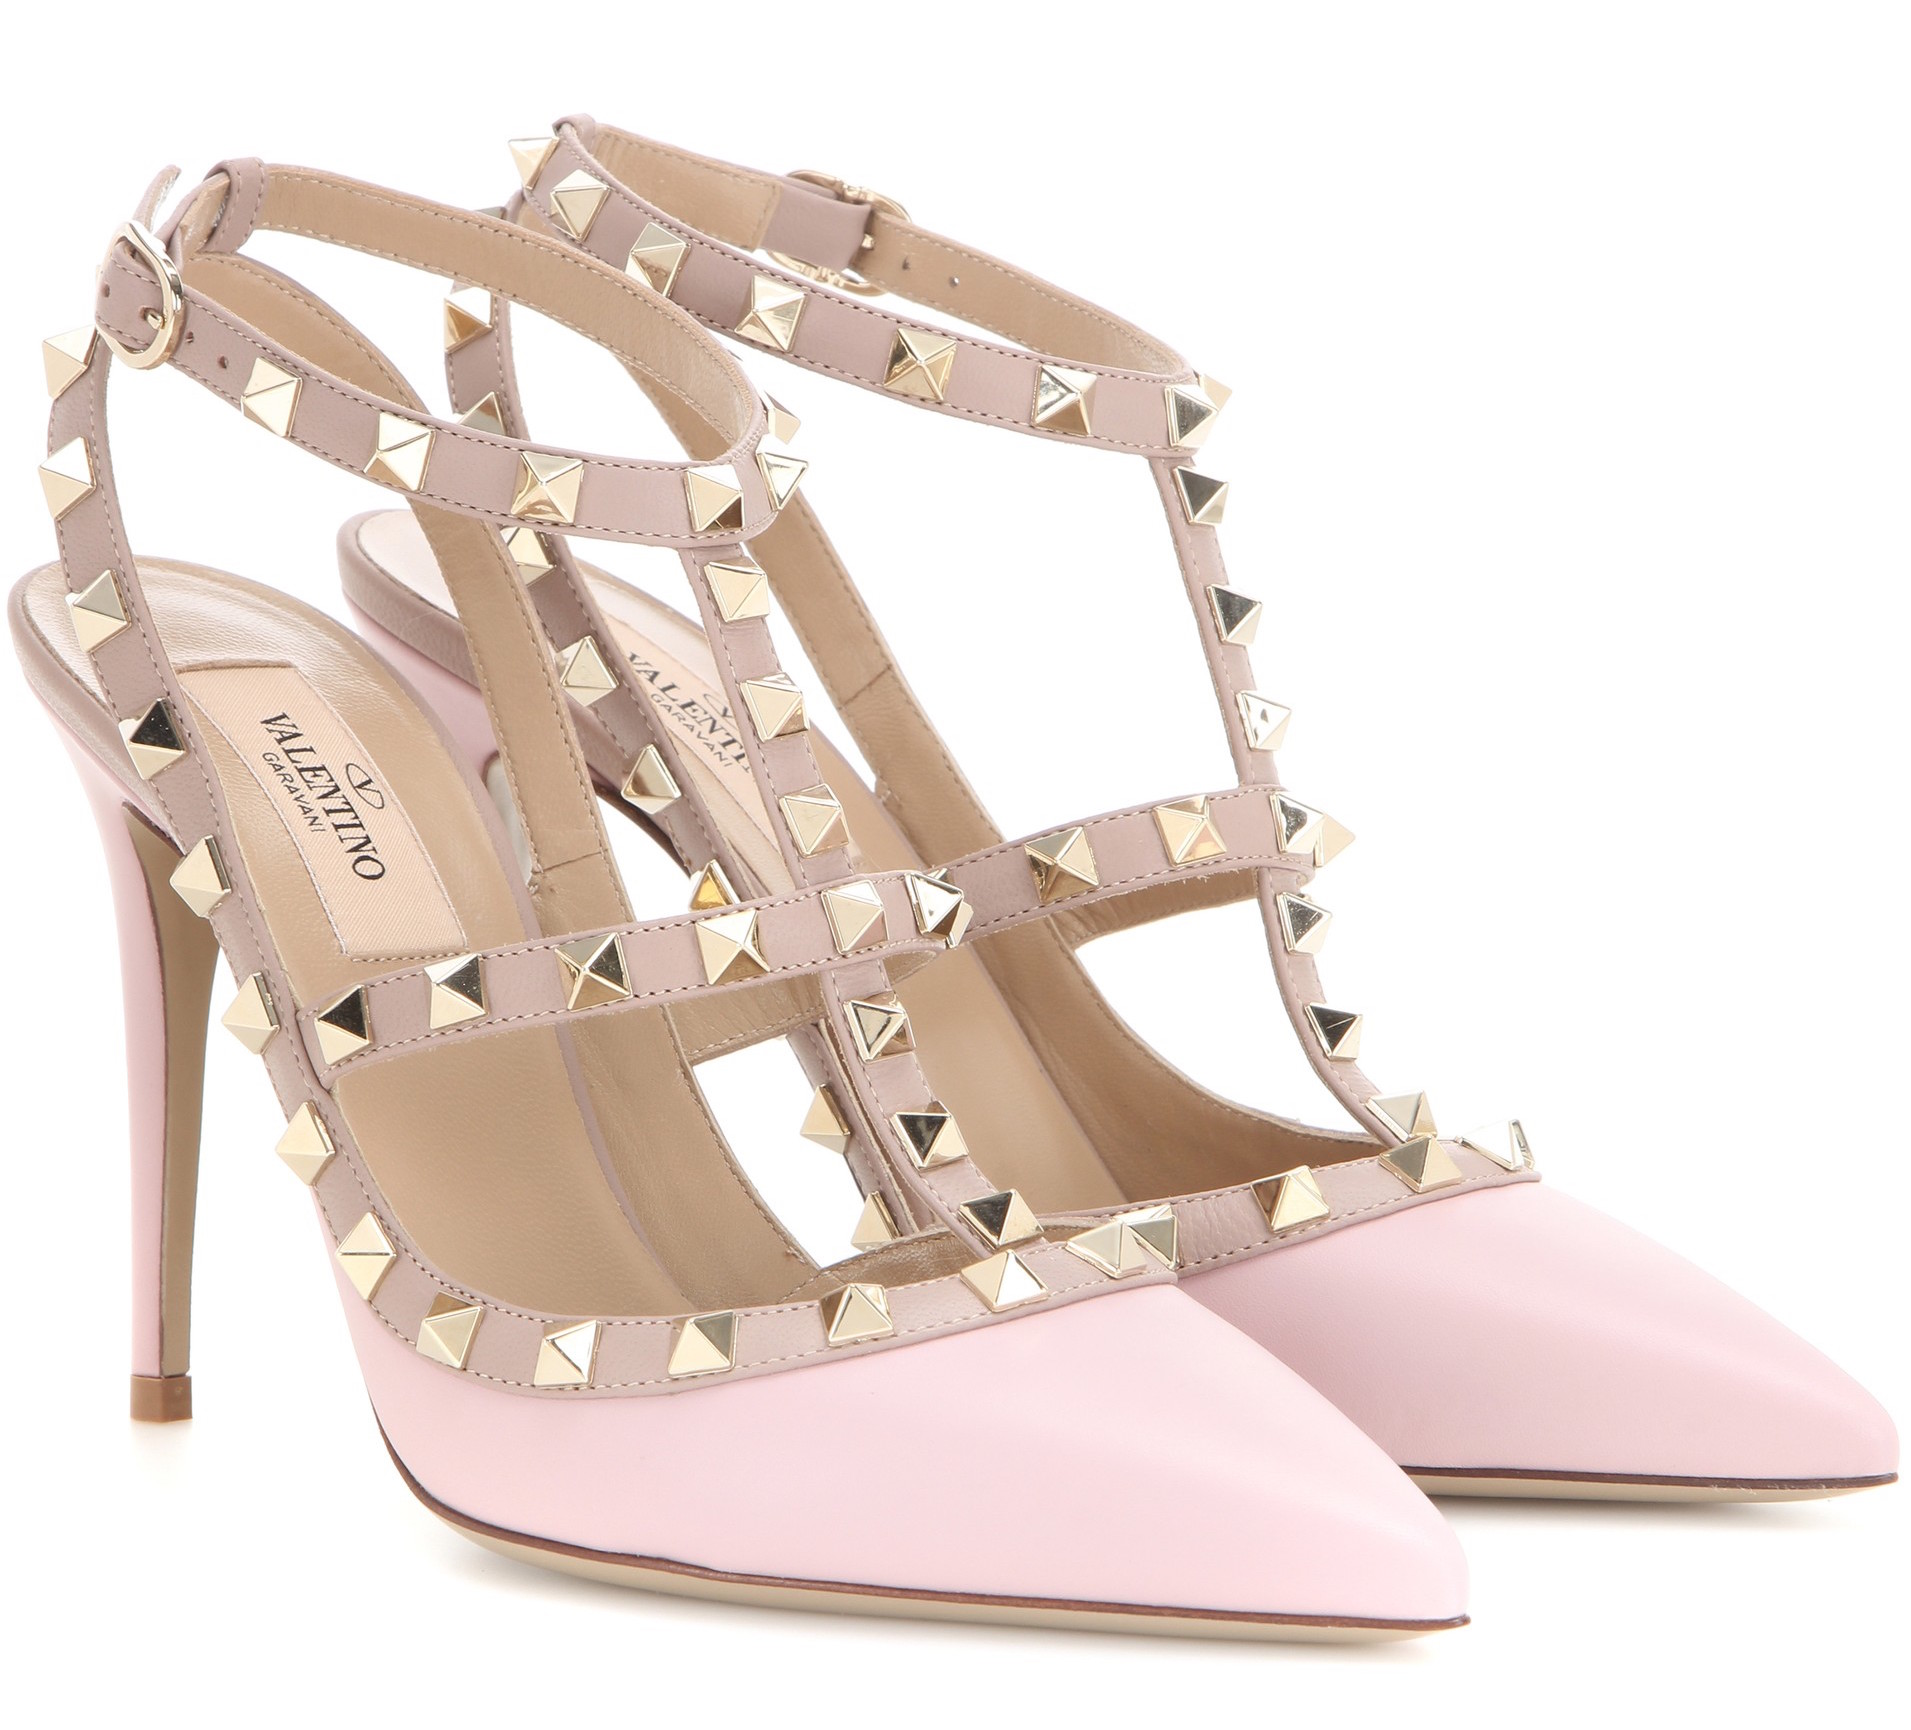 14 New Valentino Rockstud Shoes For Summer 2016 Fashion